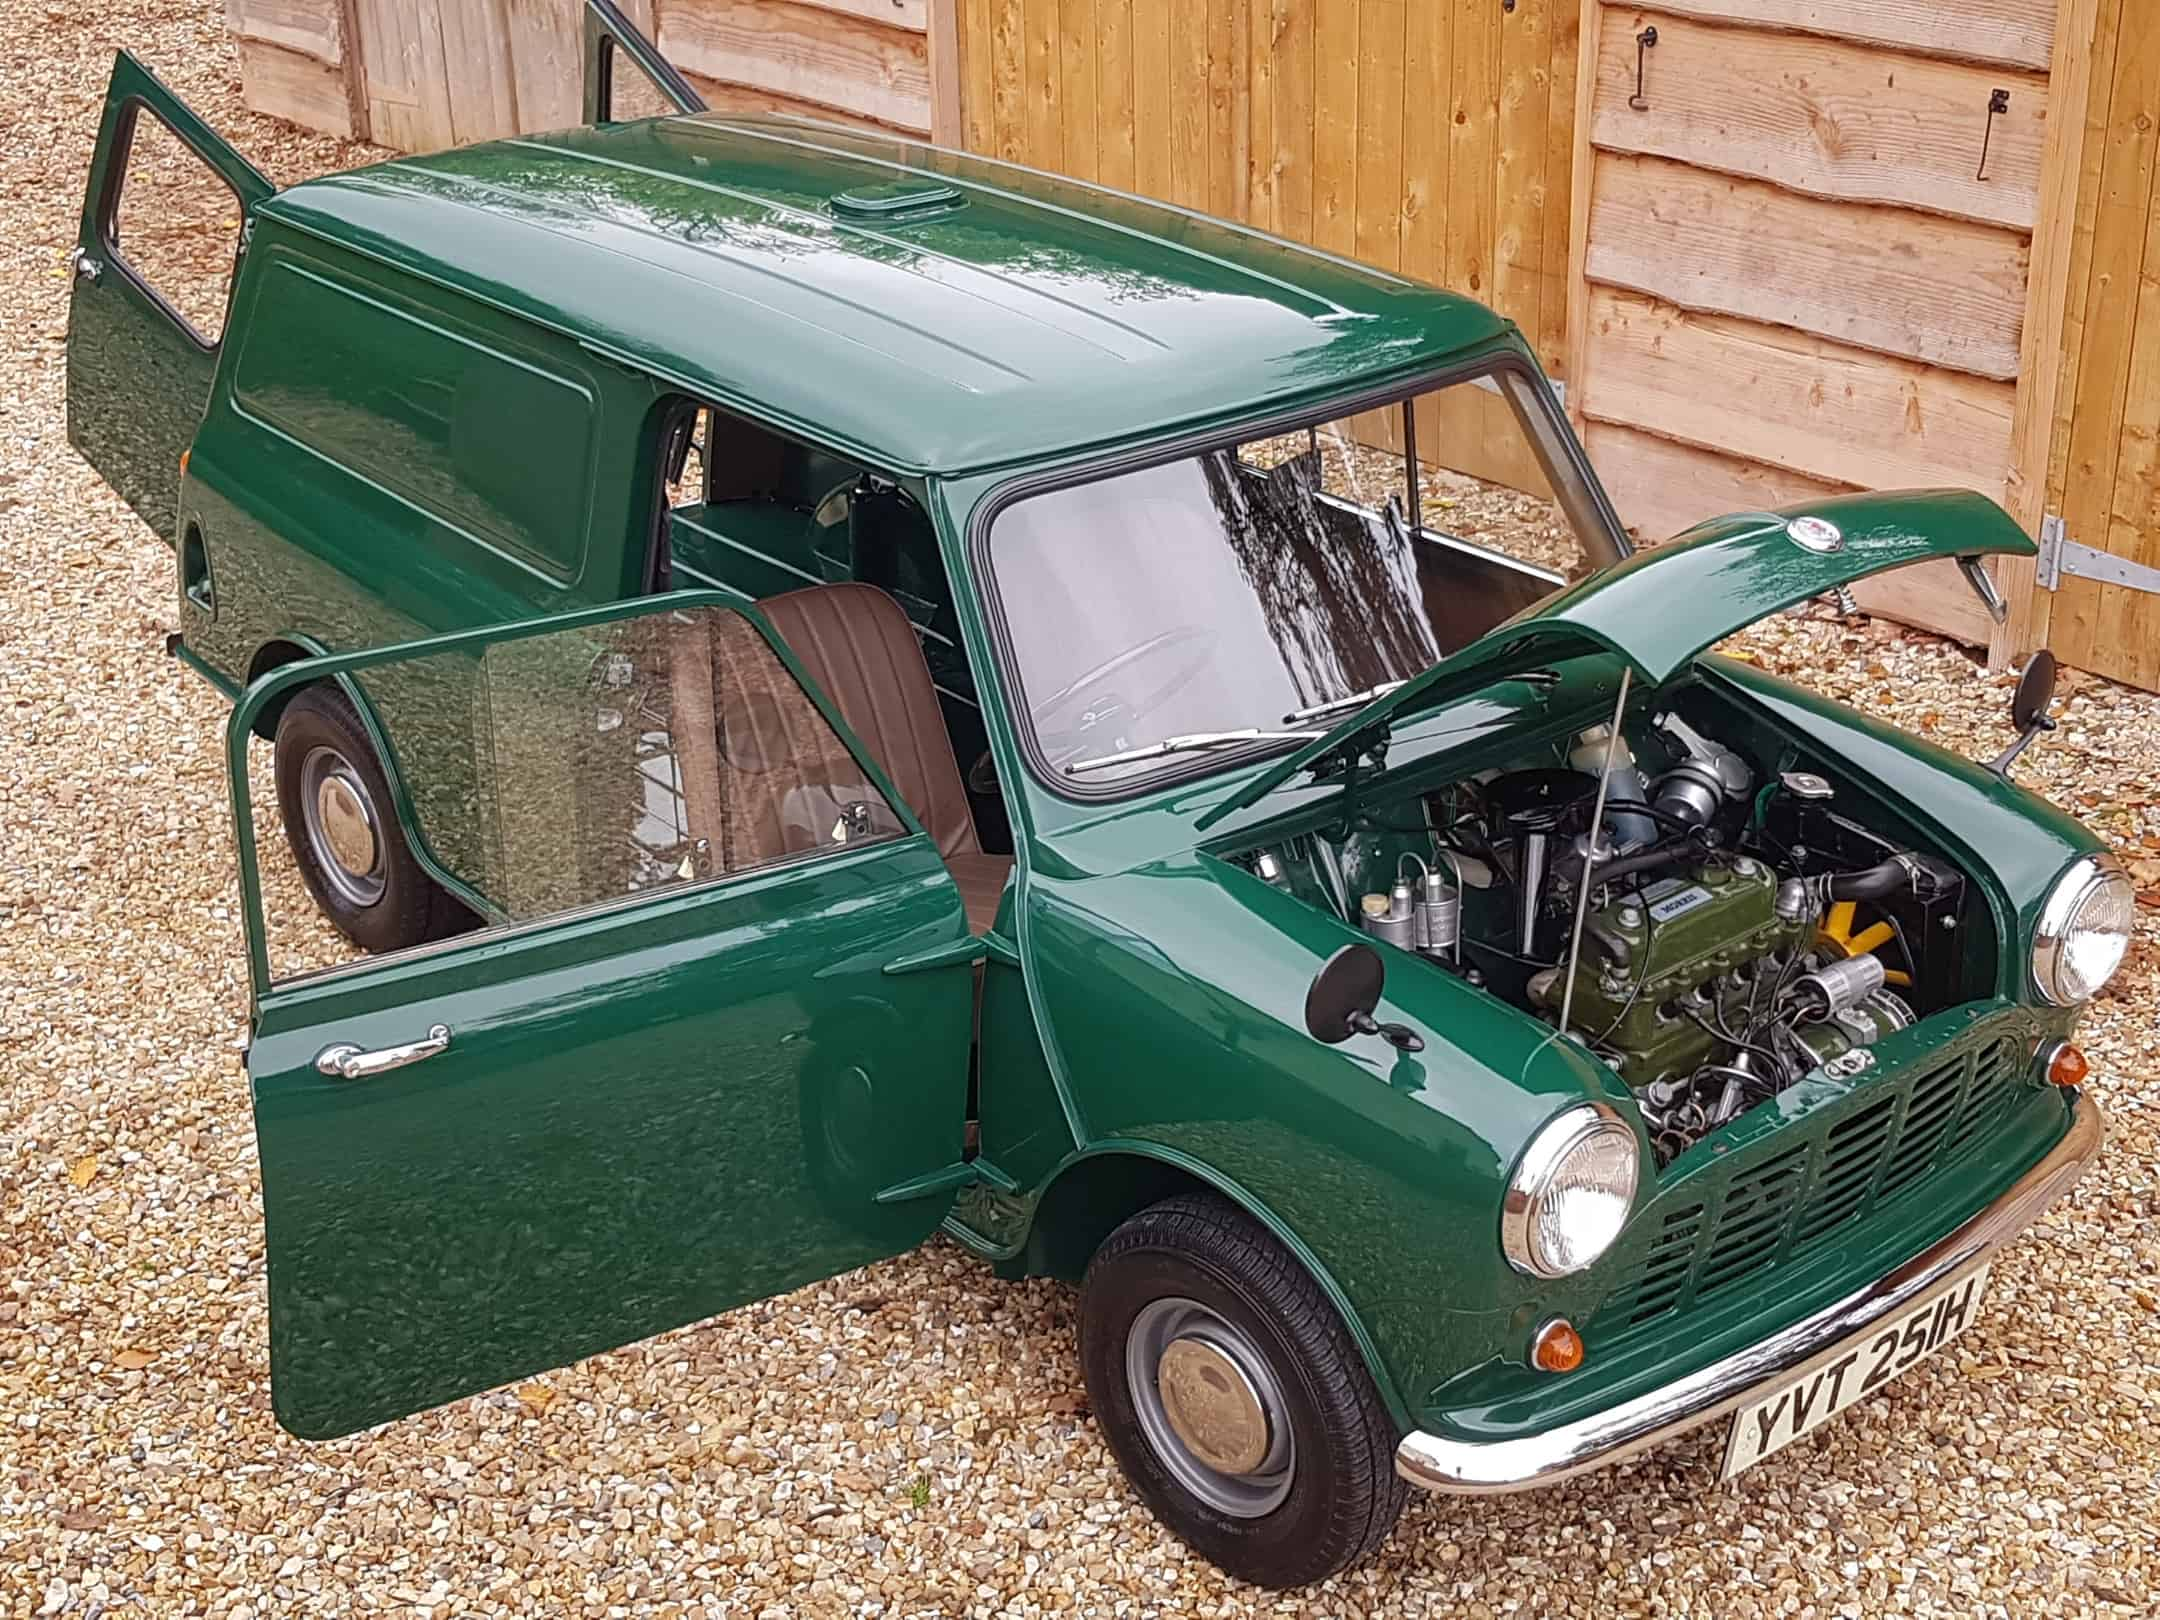 ** NOW SOLD ** Unique 1969 Morris Mini Van On 17800 Miles From New!!